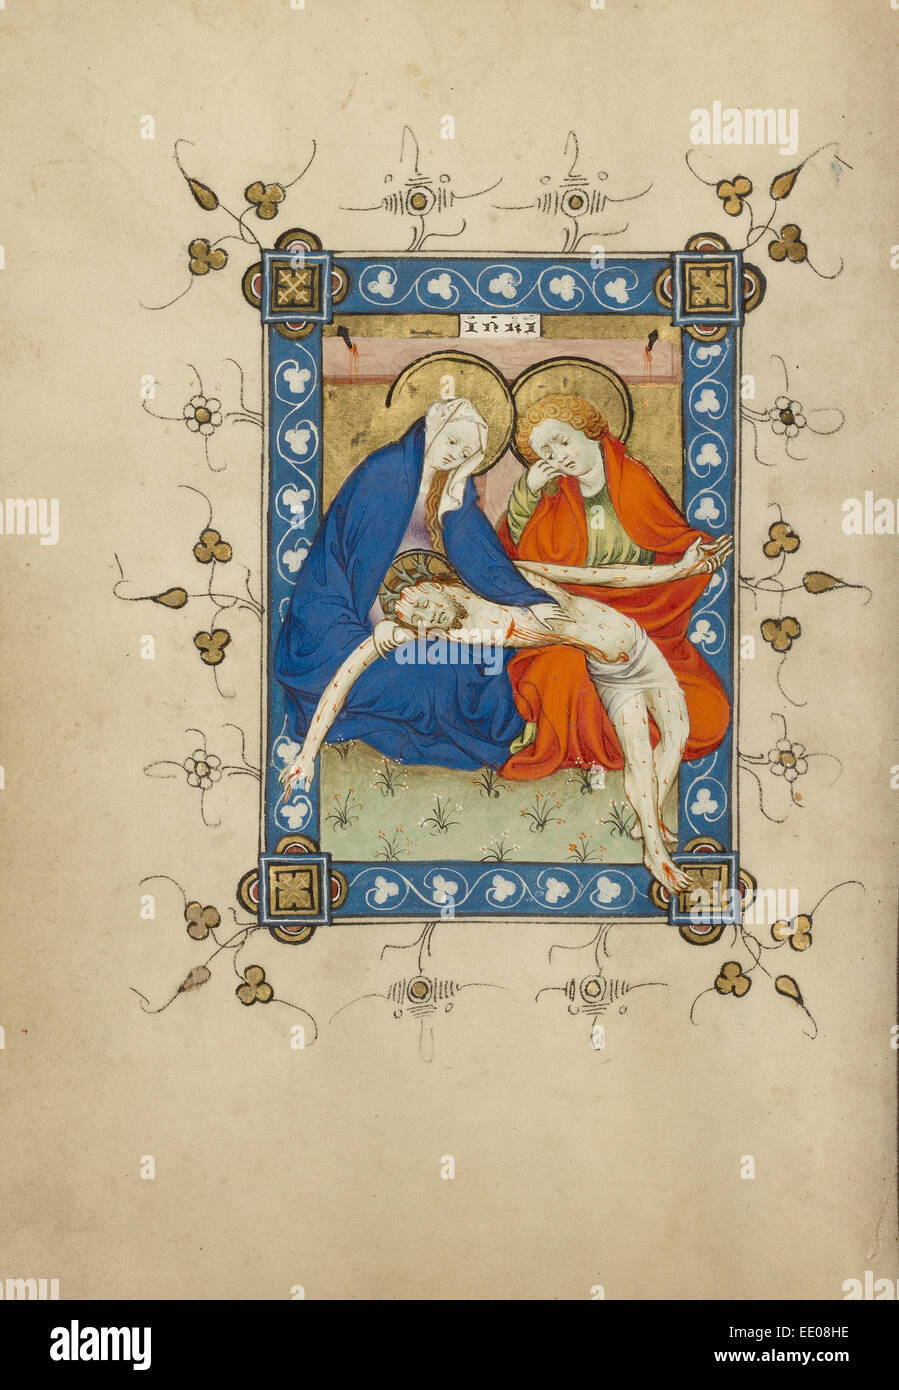 The Lamentation; Masters of Dirc van Delf, Dutch, active about 1400 - about 1410; Utrecht (probably), Netherlands, - Stock Image